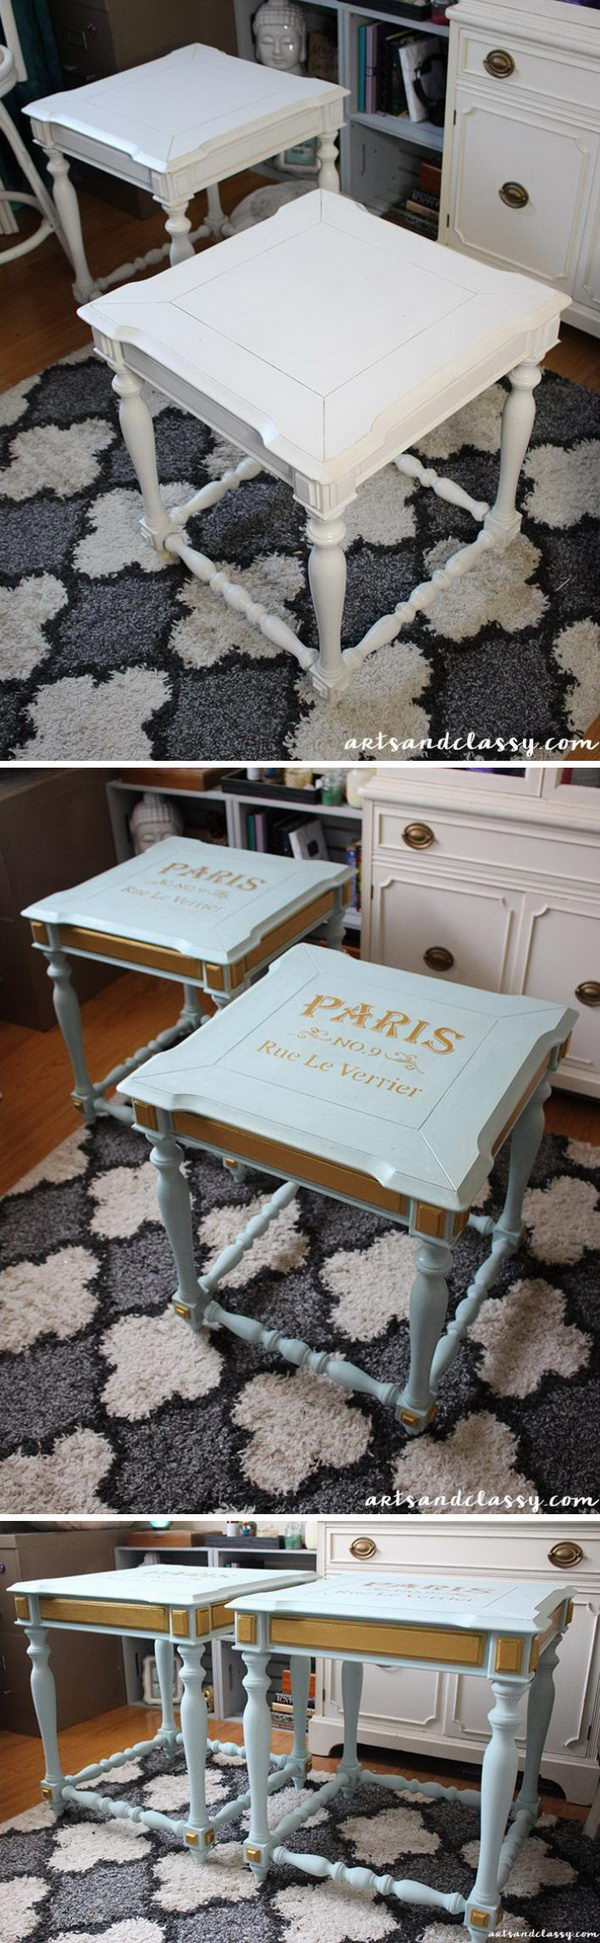 End Tables Get a French Twist Makeover.